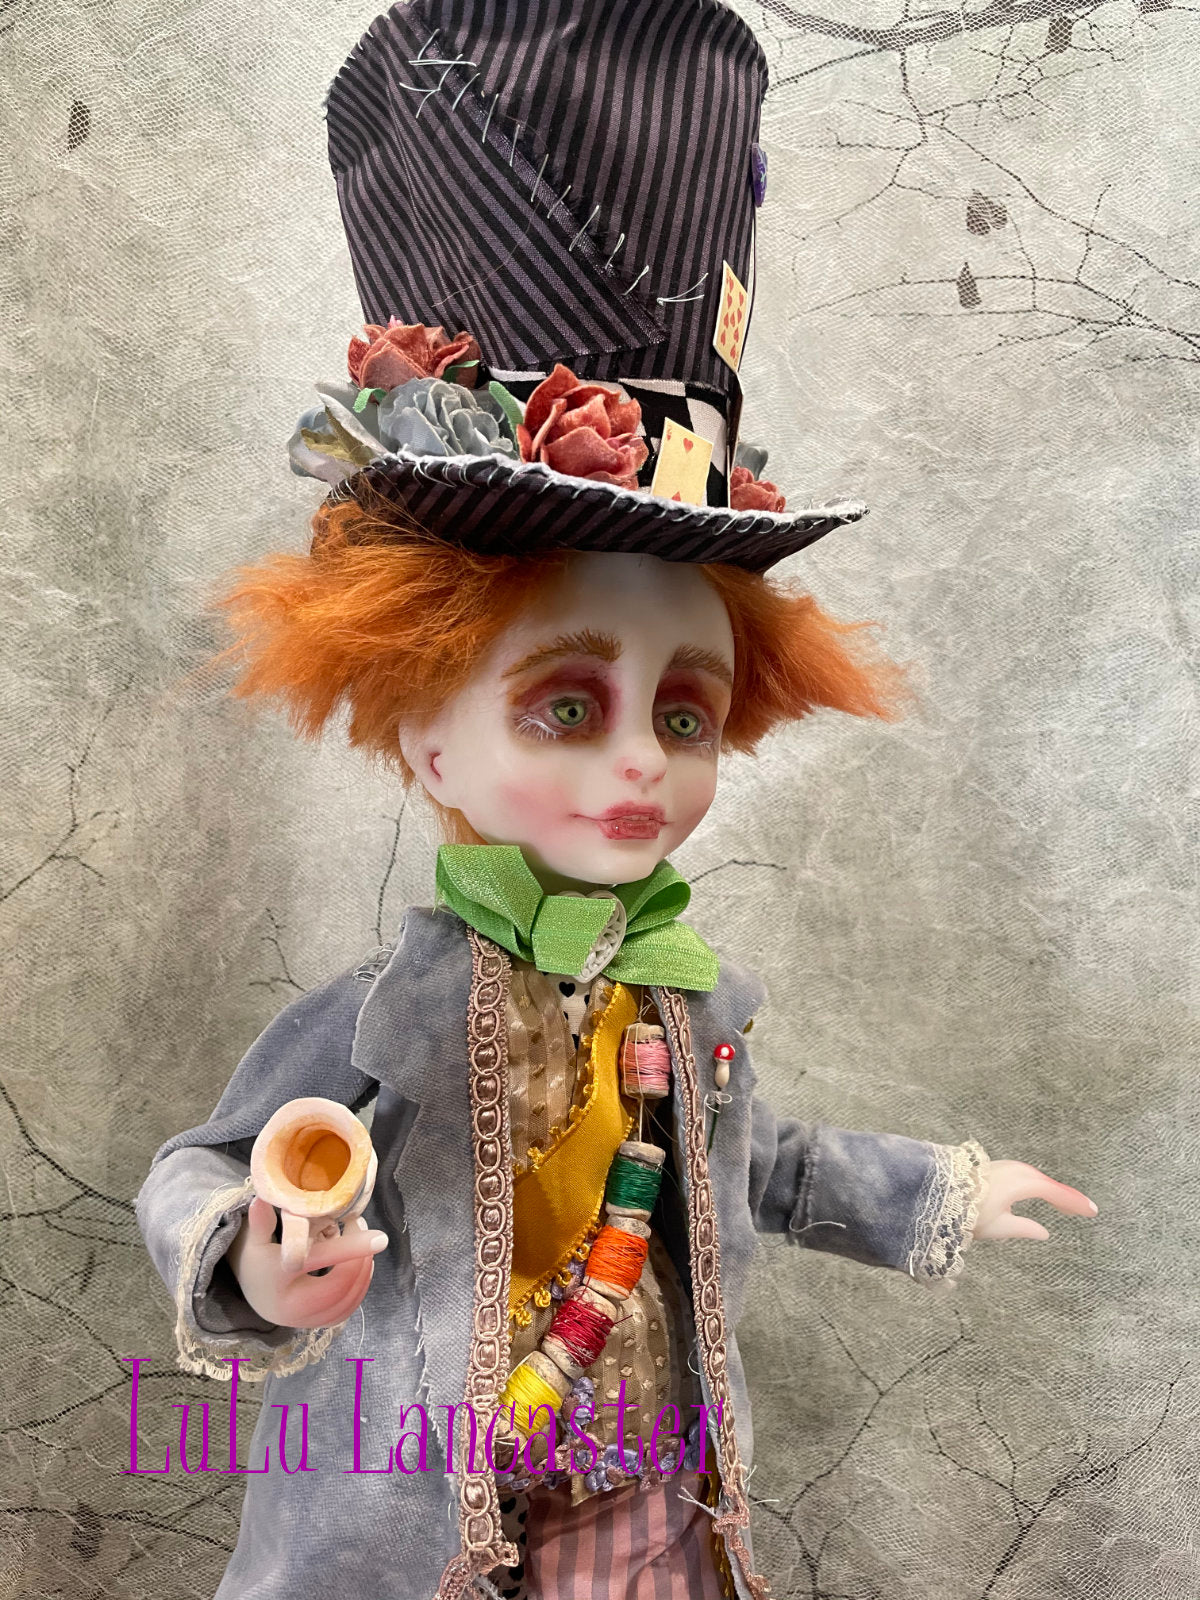 Mad Hatter and Humpty Dumpty Original LuLu Lancaster Art Doll